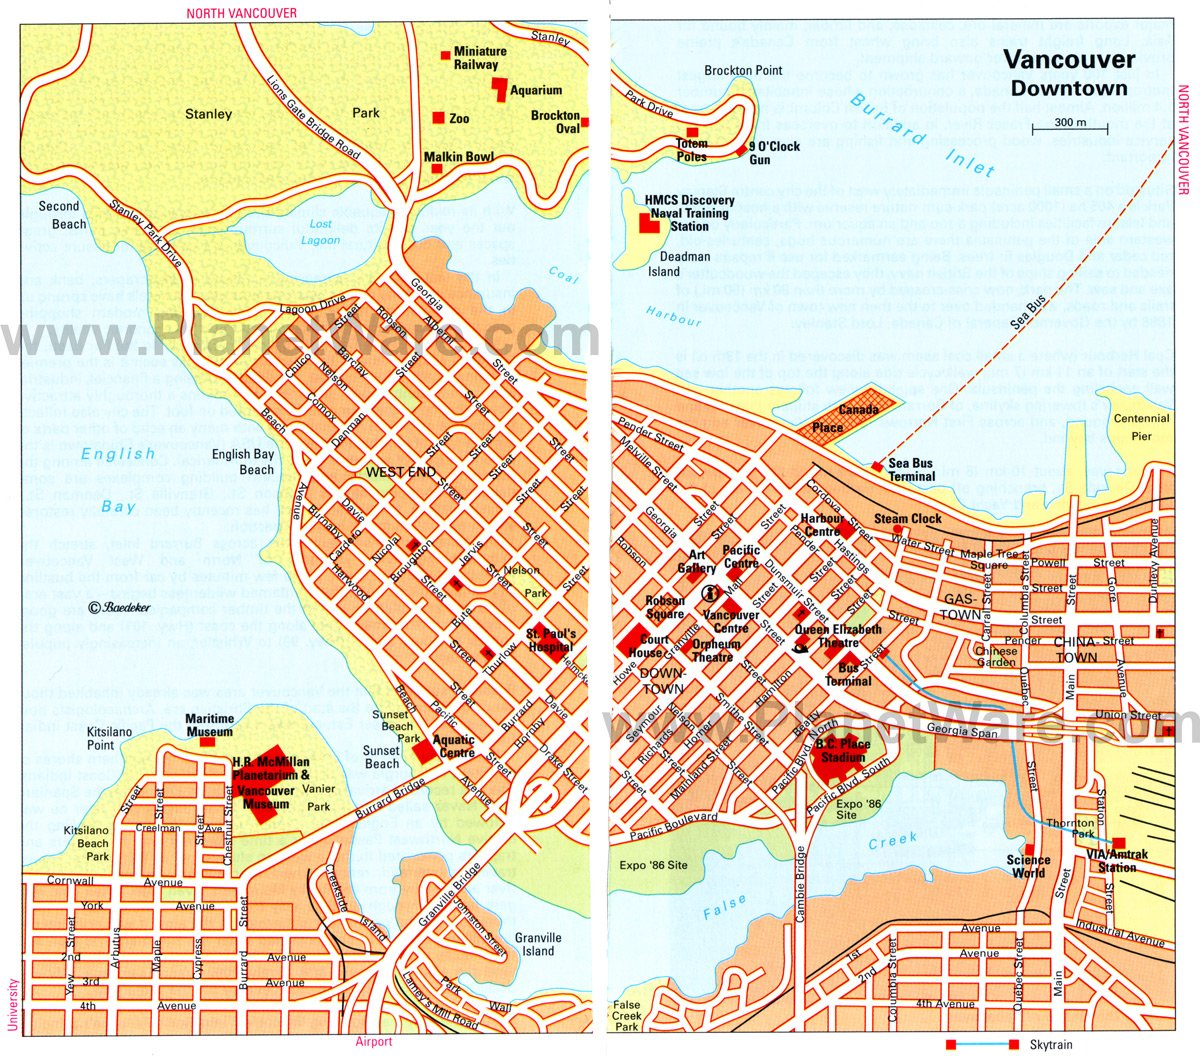 Vancouver Map - Tourist Attractions